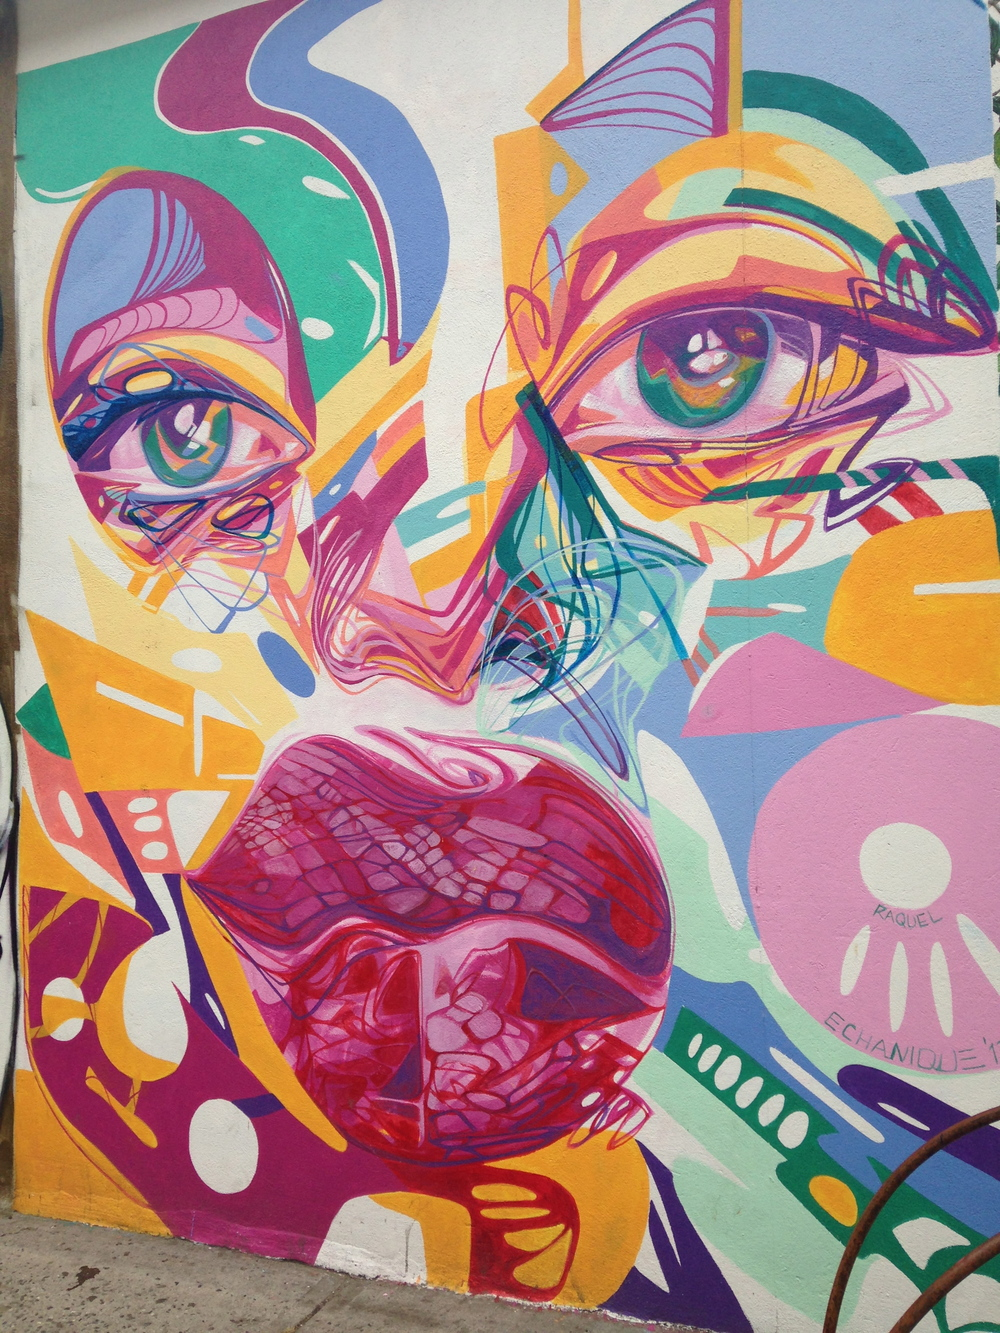 This was by far my favorite piece. The choice of colors and the abstraction of her face is perfect.